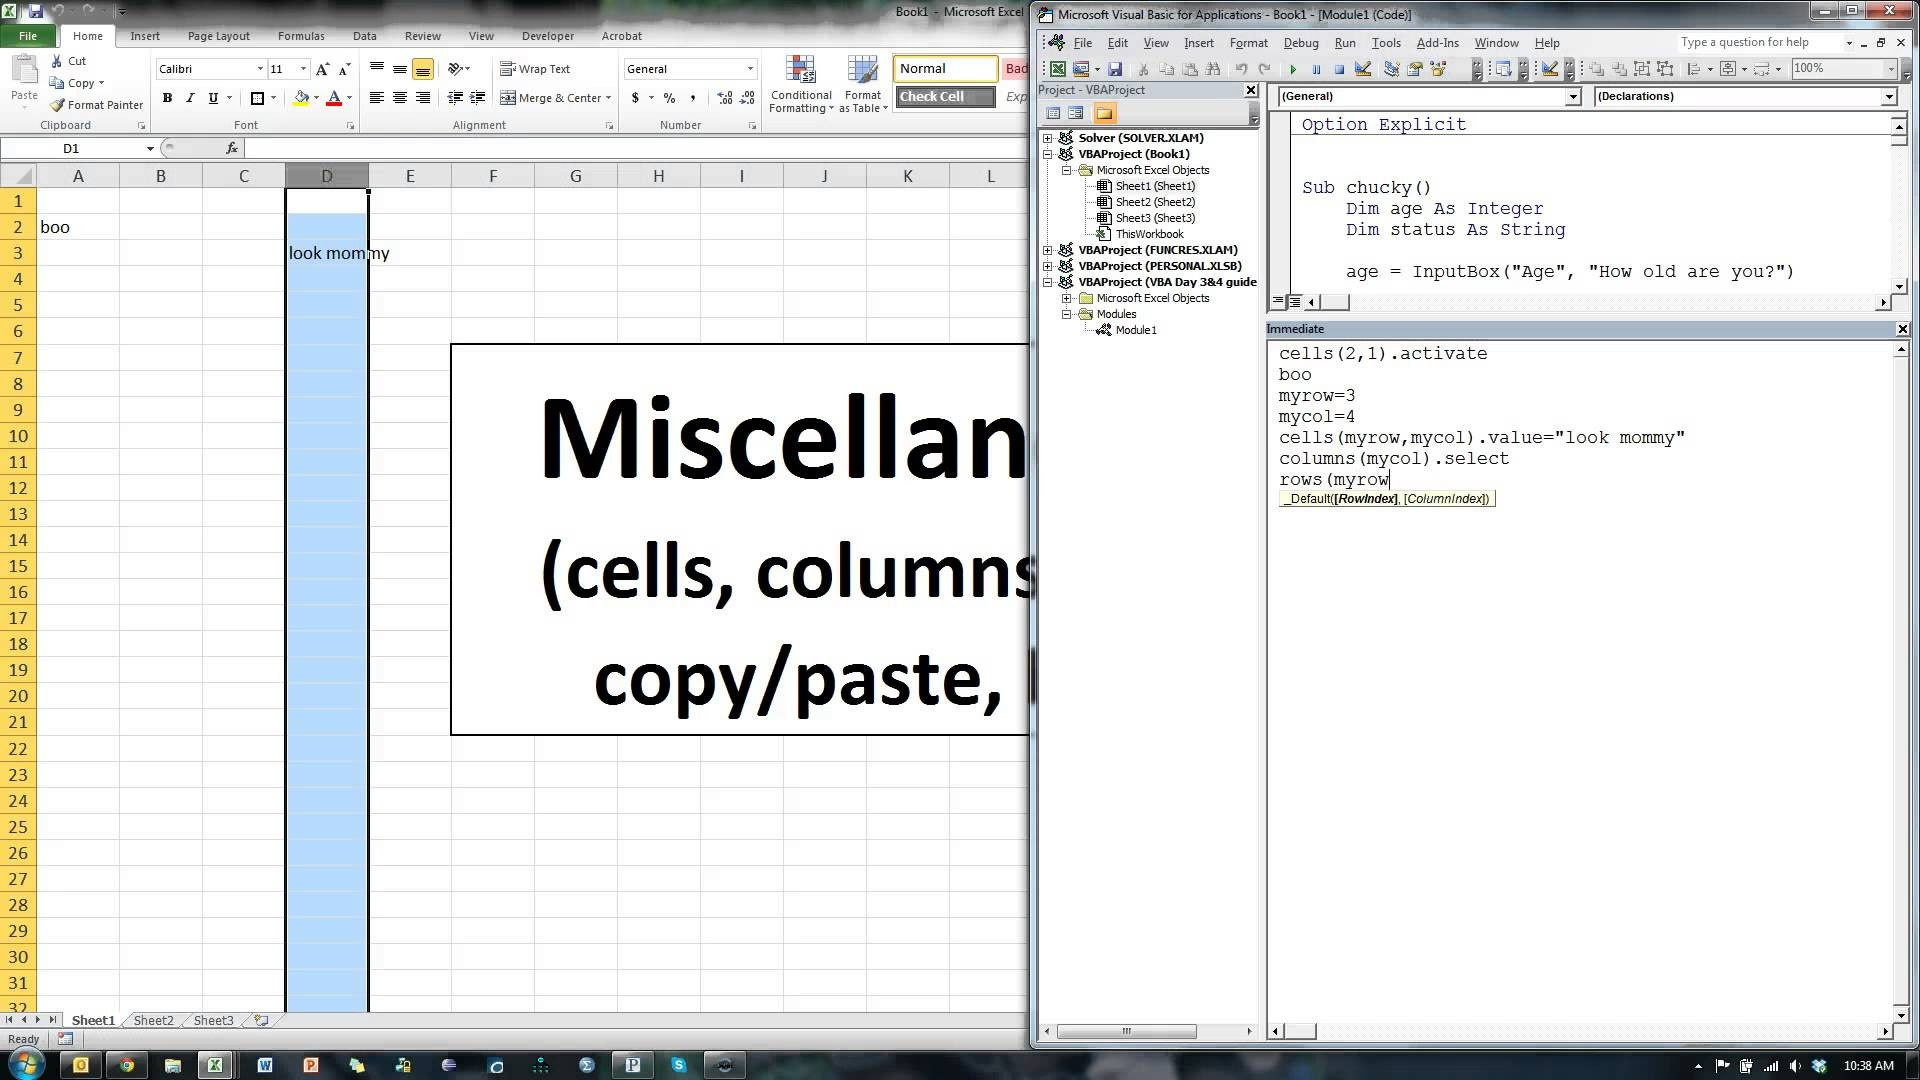 Unhide Worksheet With Vba